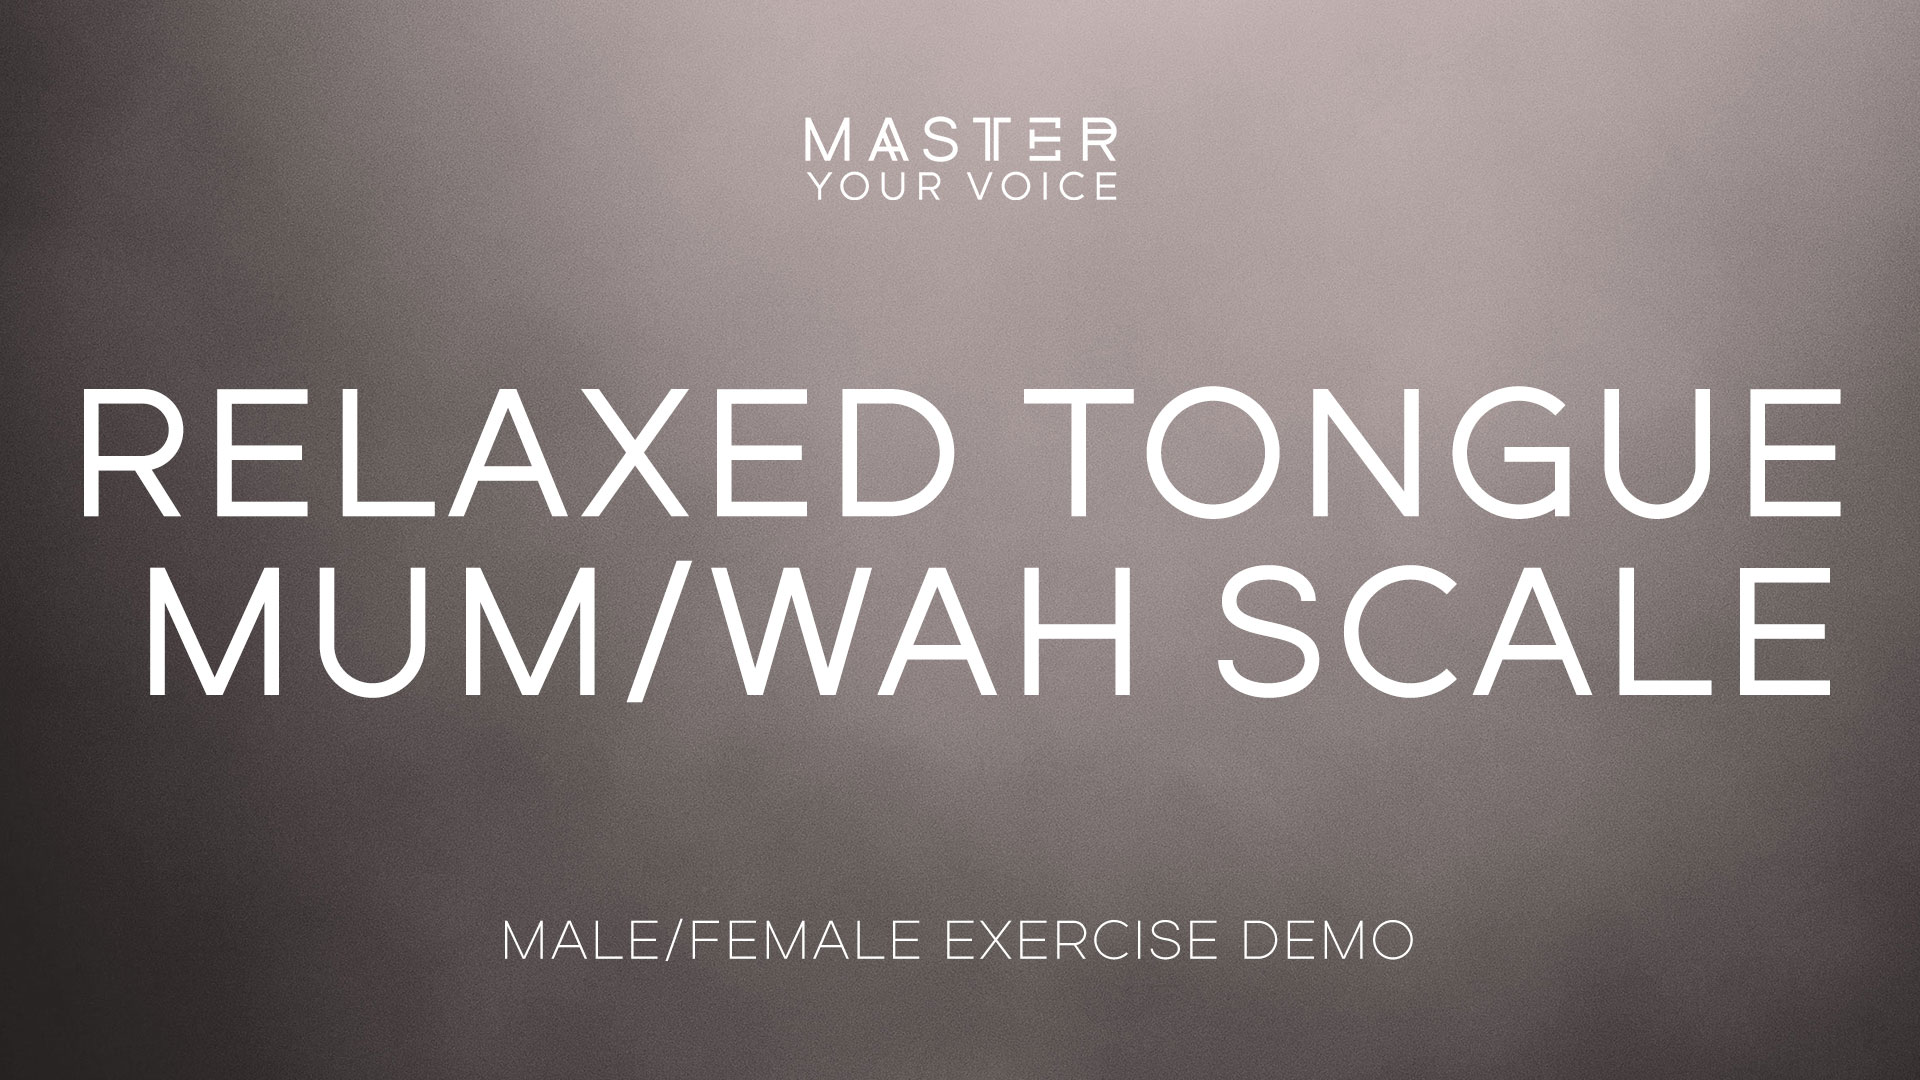 Relaxed Tongue Mum/Wah Scale Exercise Demo